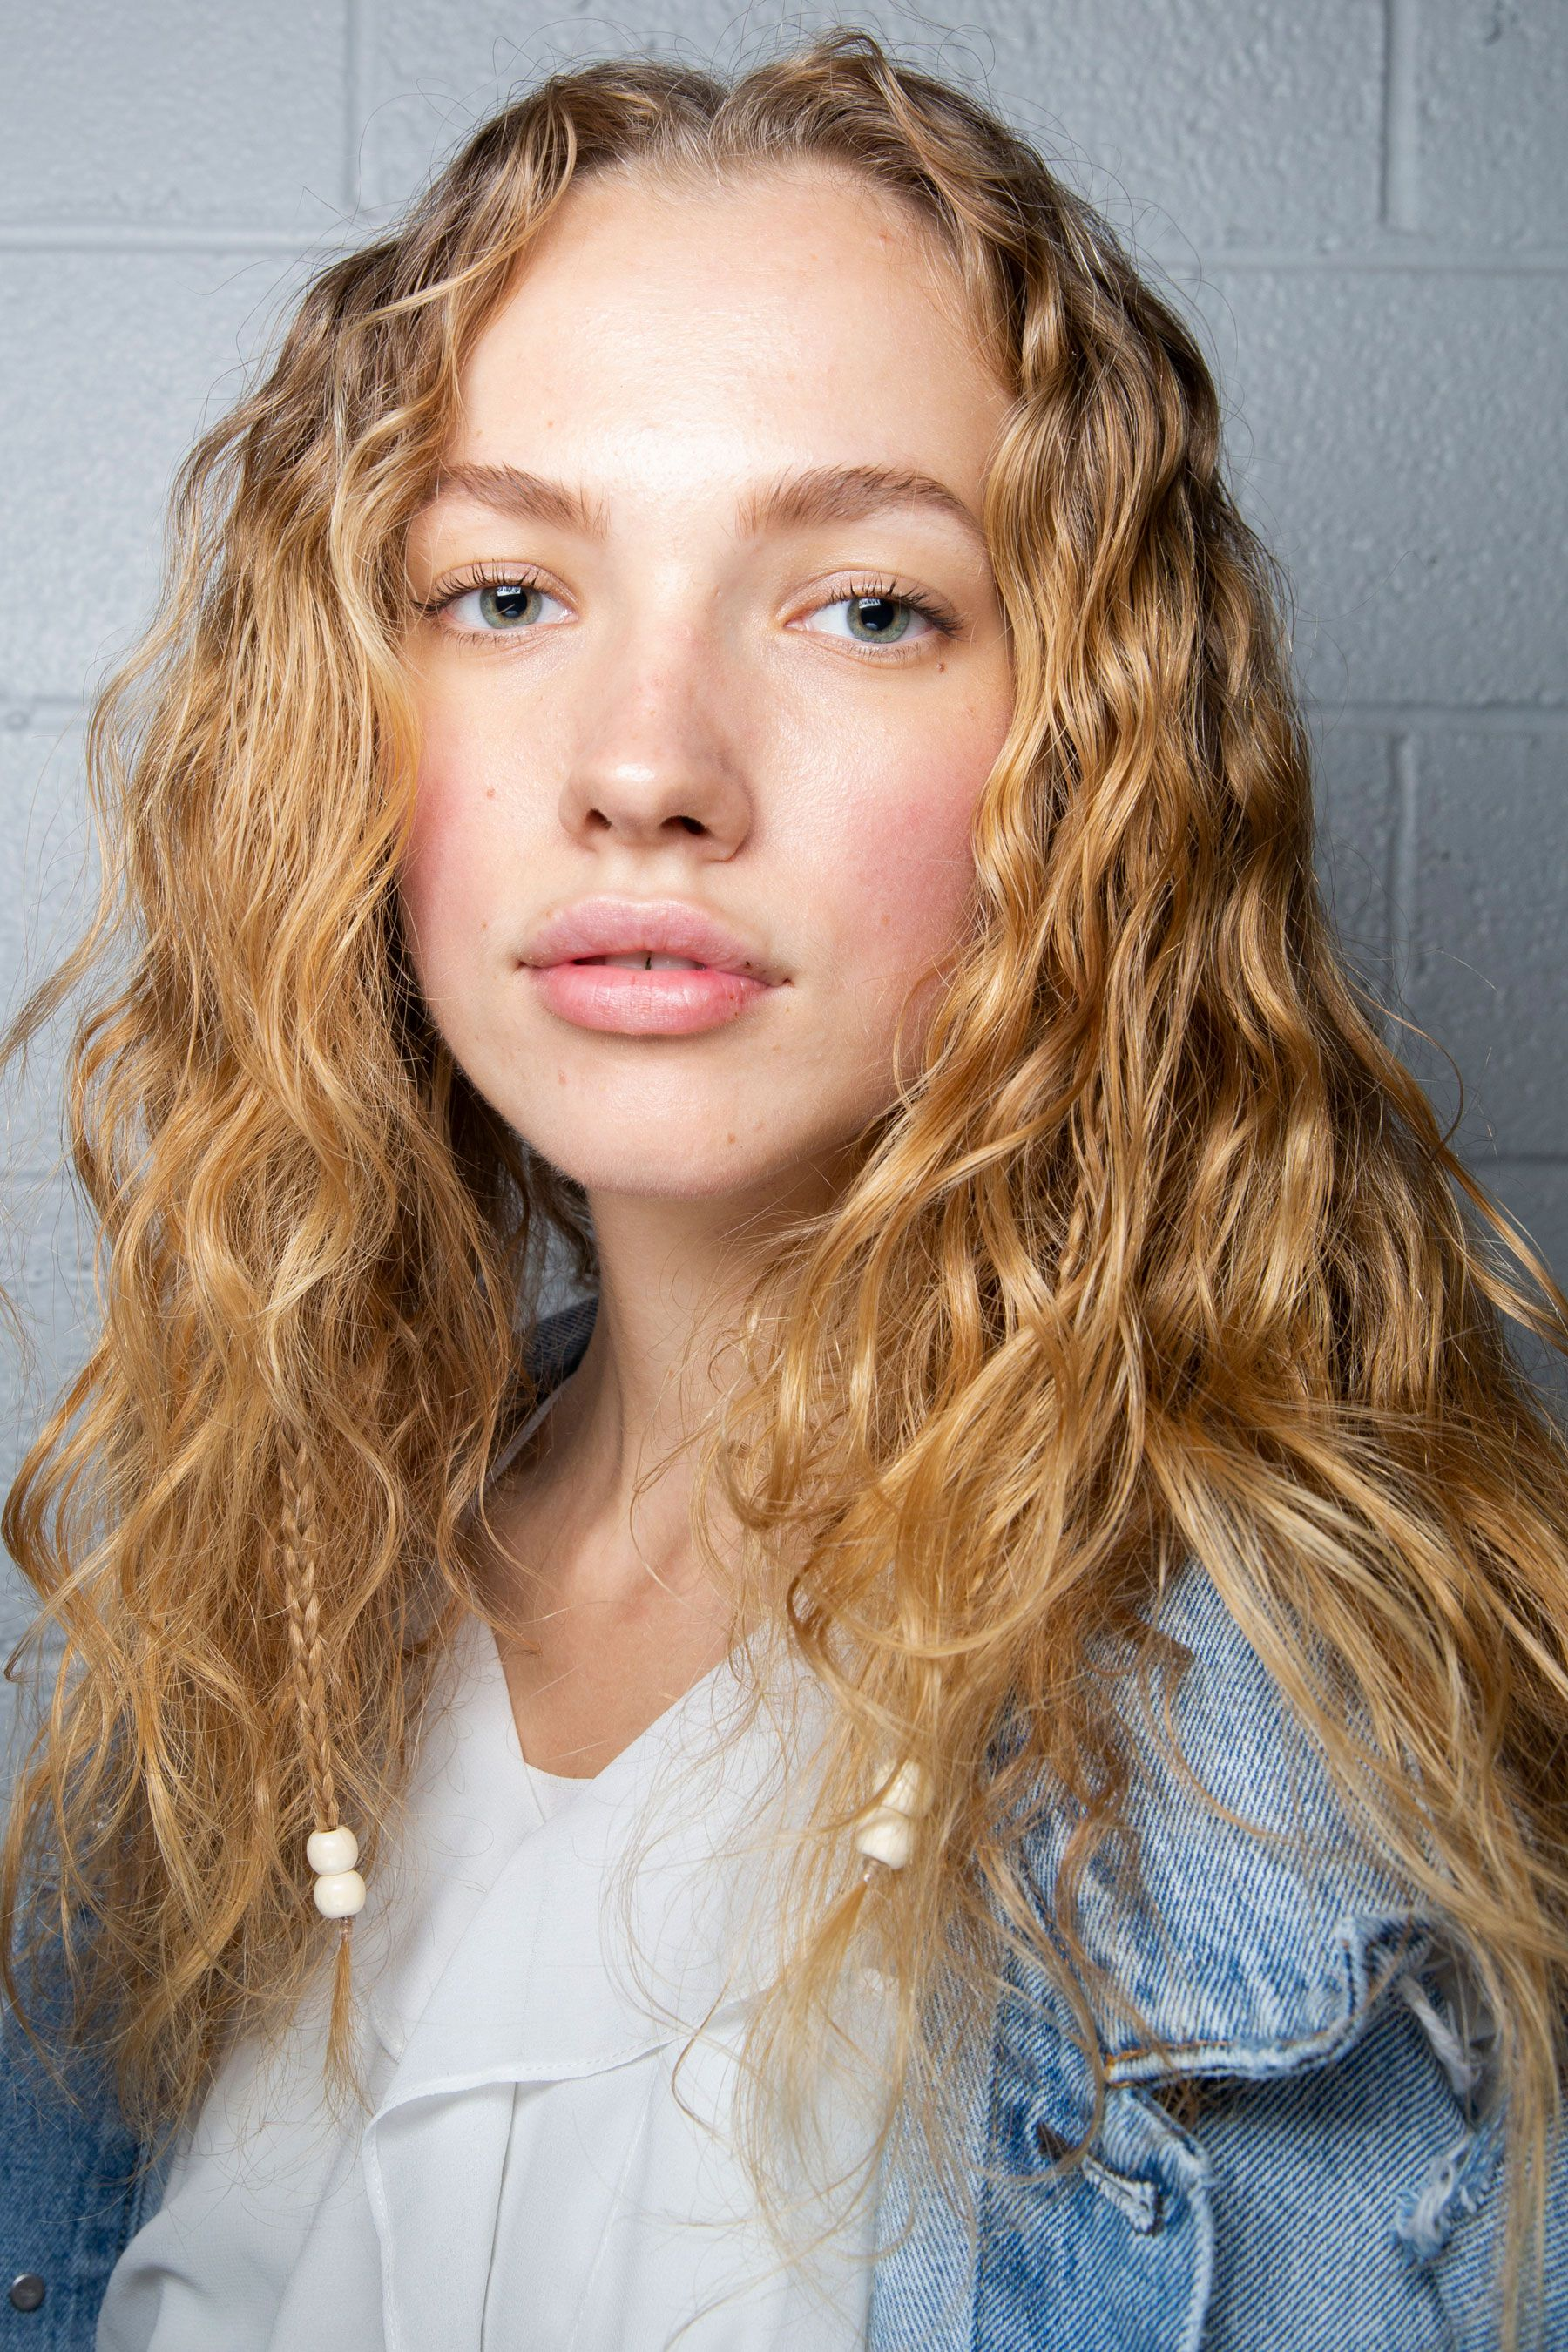 97aed78bf2cd The Best Hair Looks From the Spring 2019 Runways - Spring Summer Hair  Trends 2019